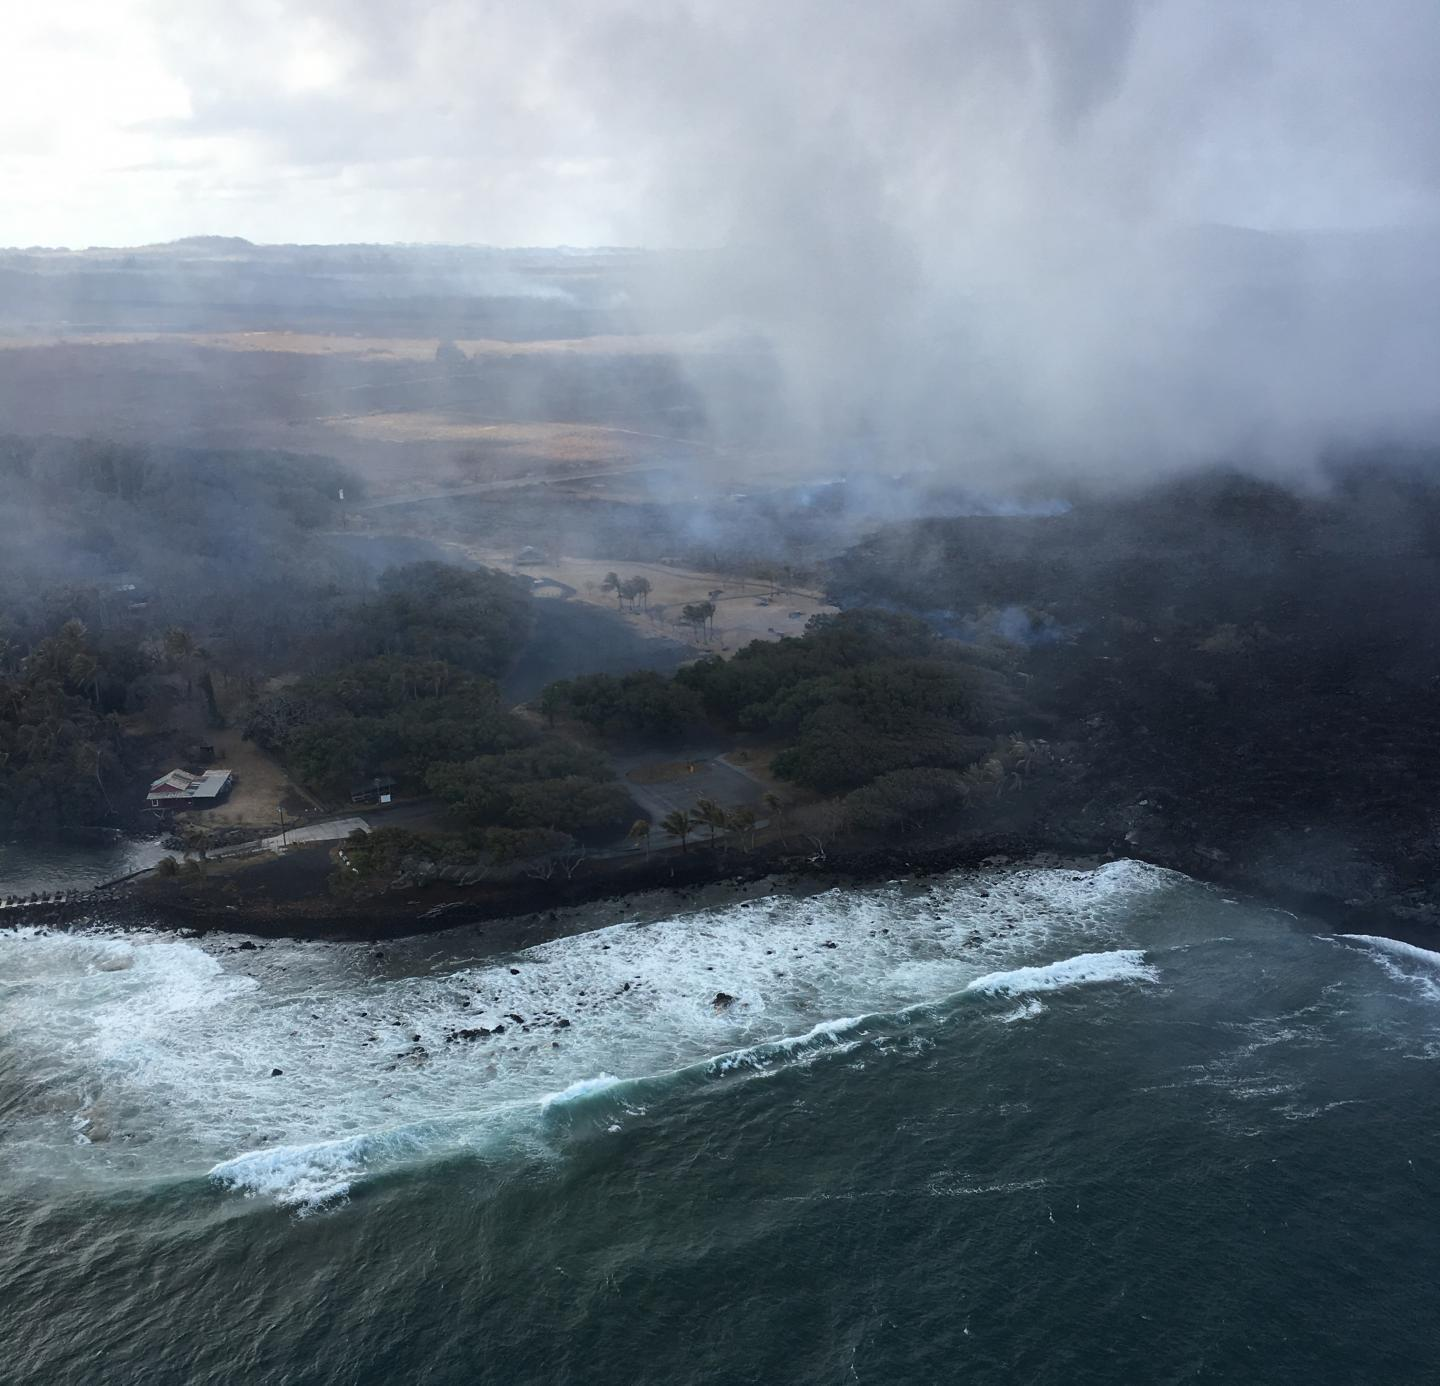 The lava from Hawaii's Kilauea volcano is closing in on a new piece of the island https://t.co/iBwHfxkHPa https://t.co/cmdT0WvQcw